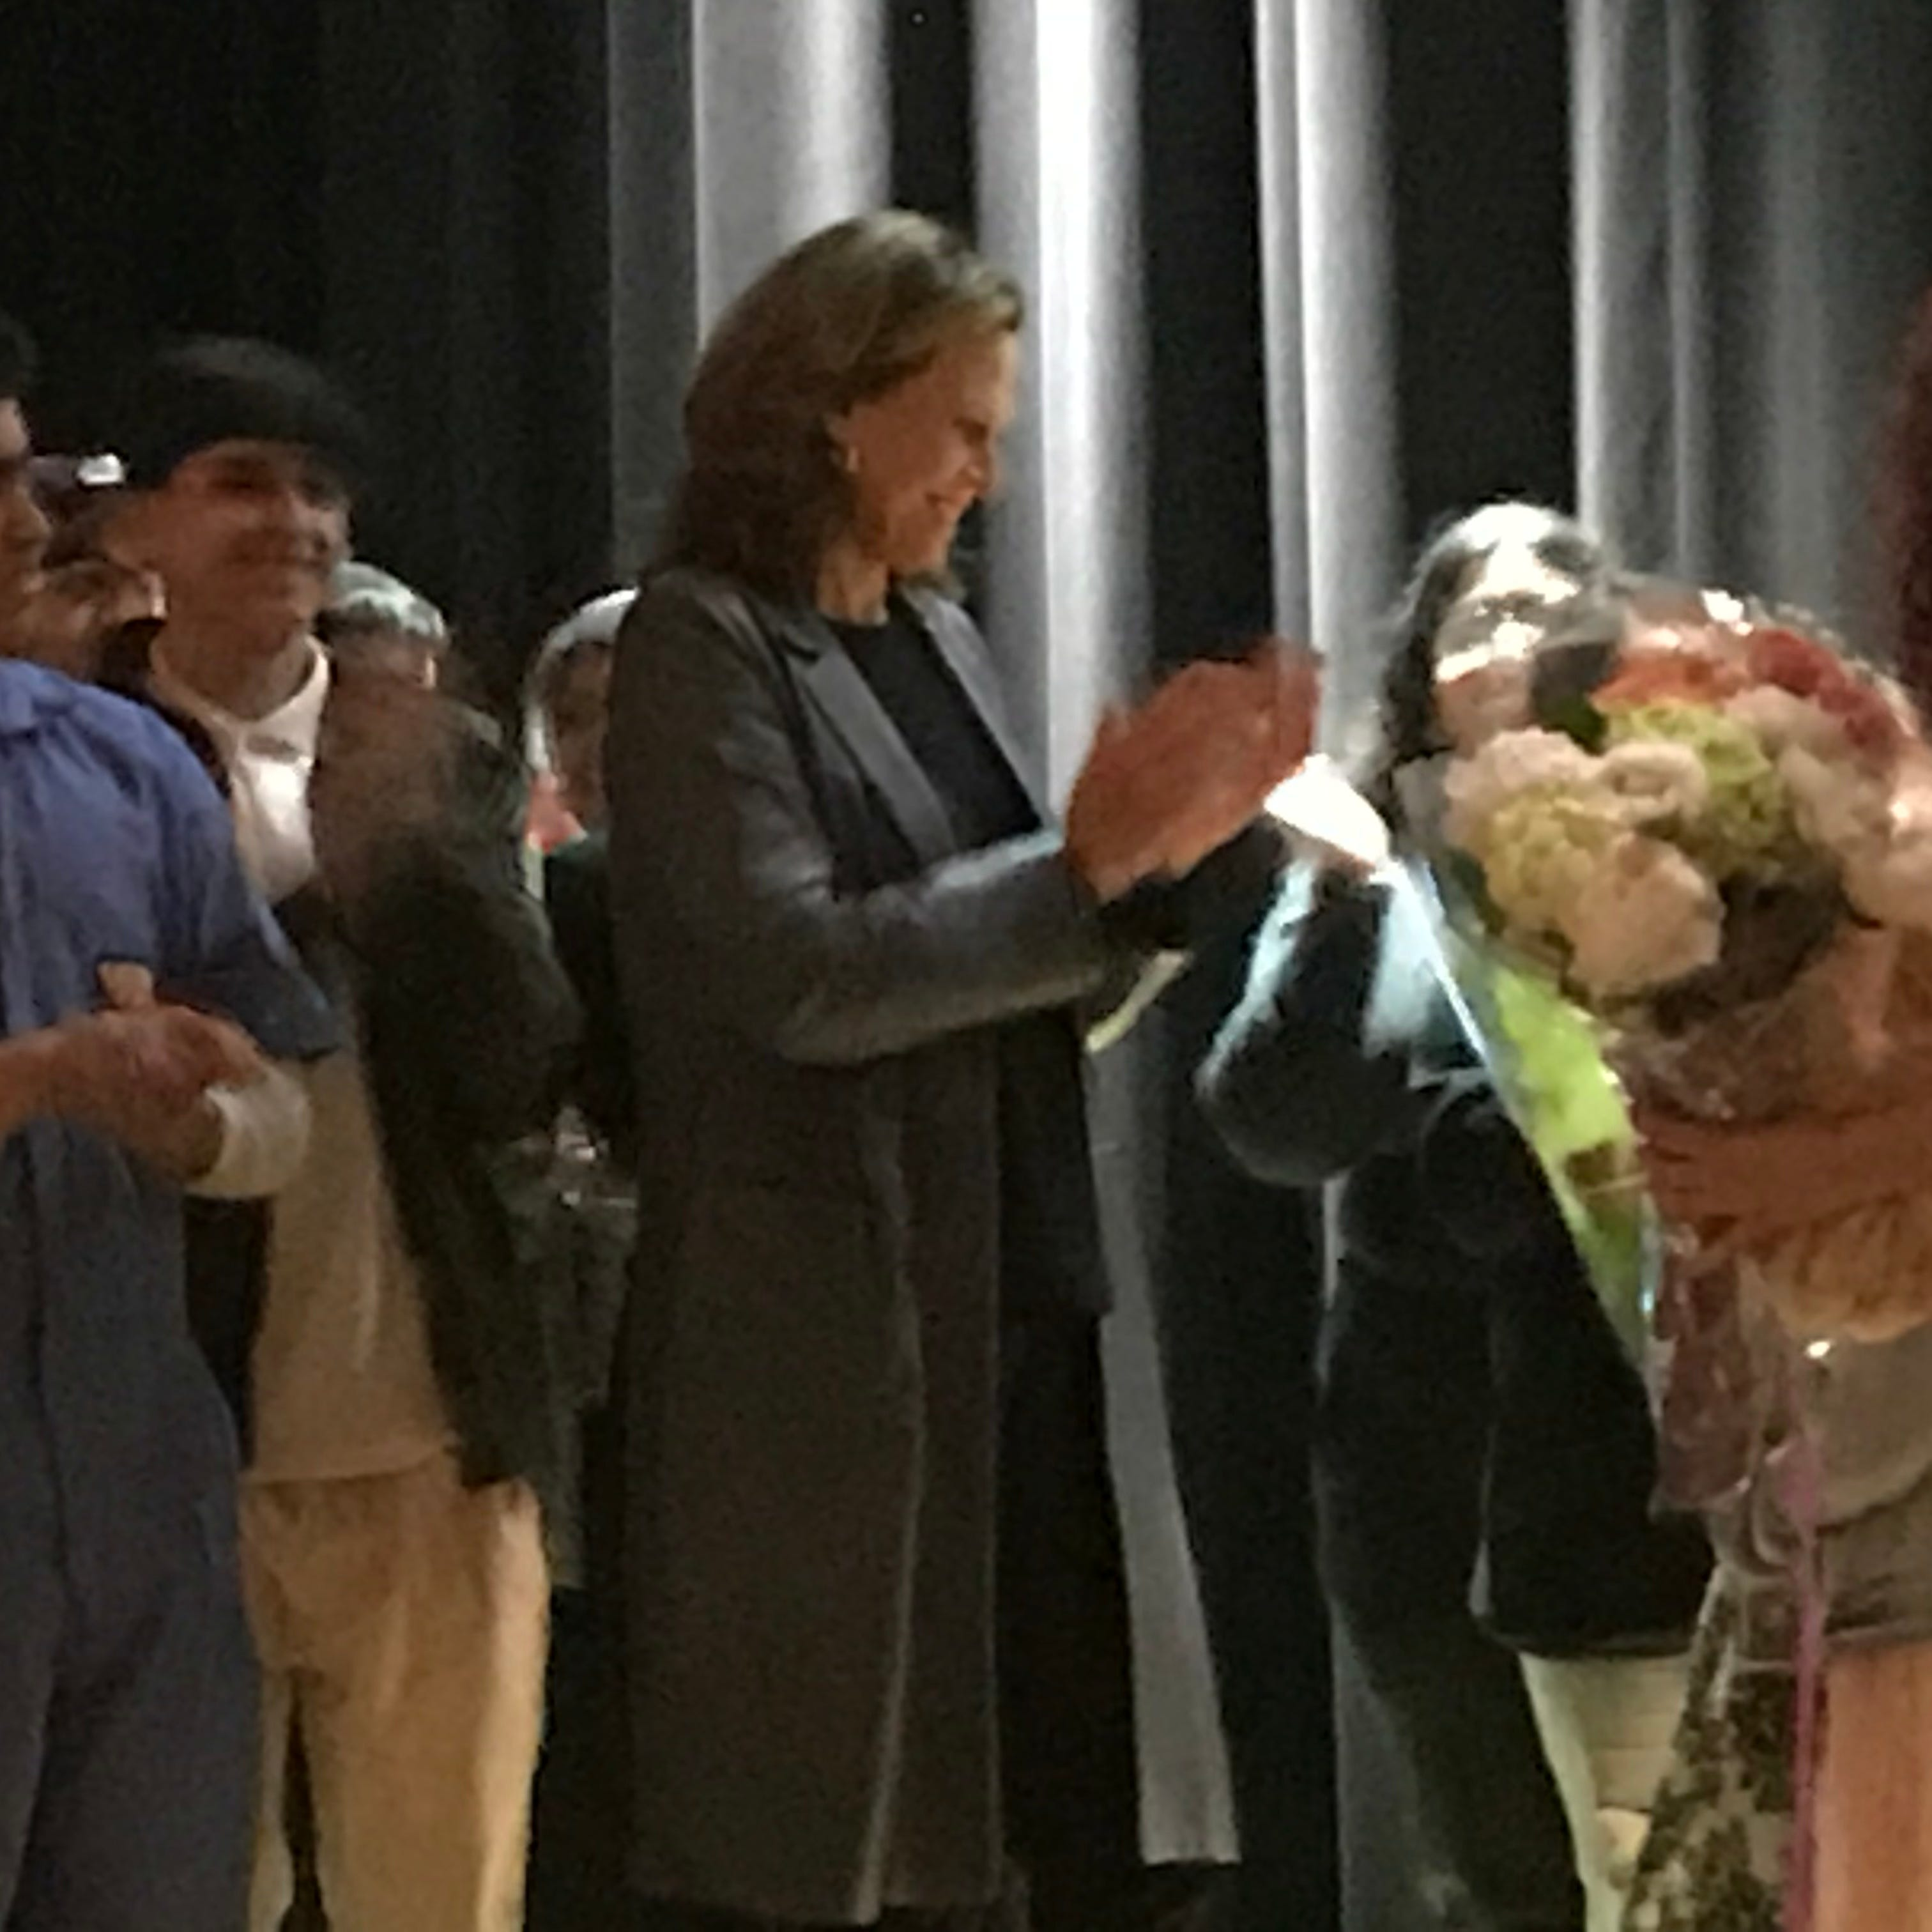 Sigourney Weaver makes appearance at North Bergen H.S. production of 'Alien' on Friday